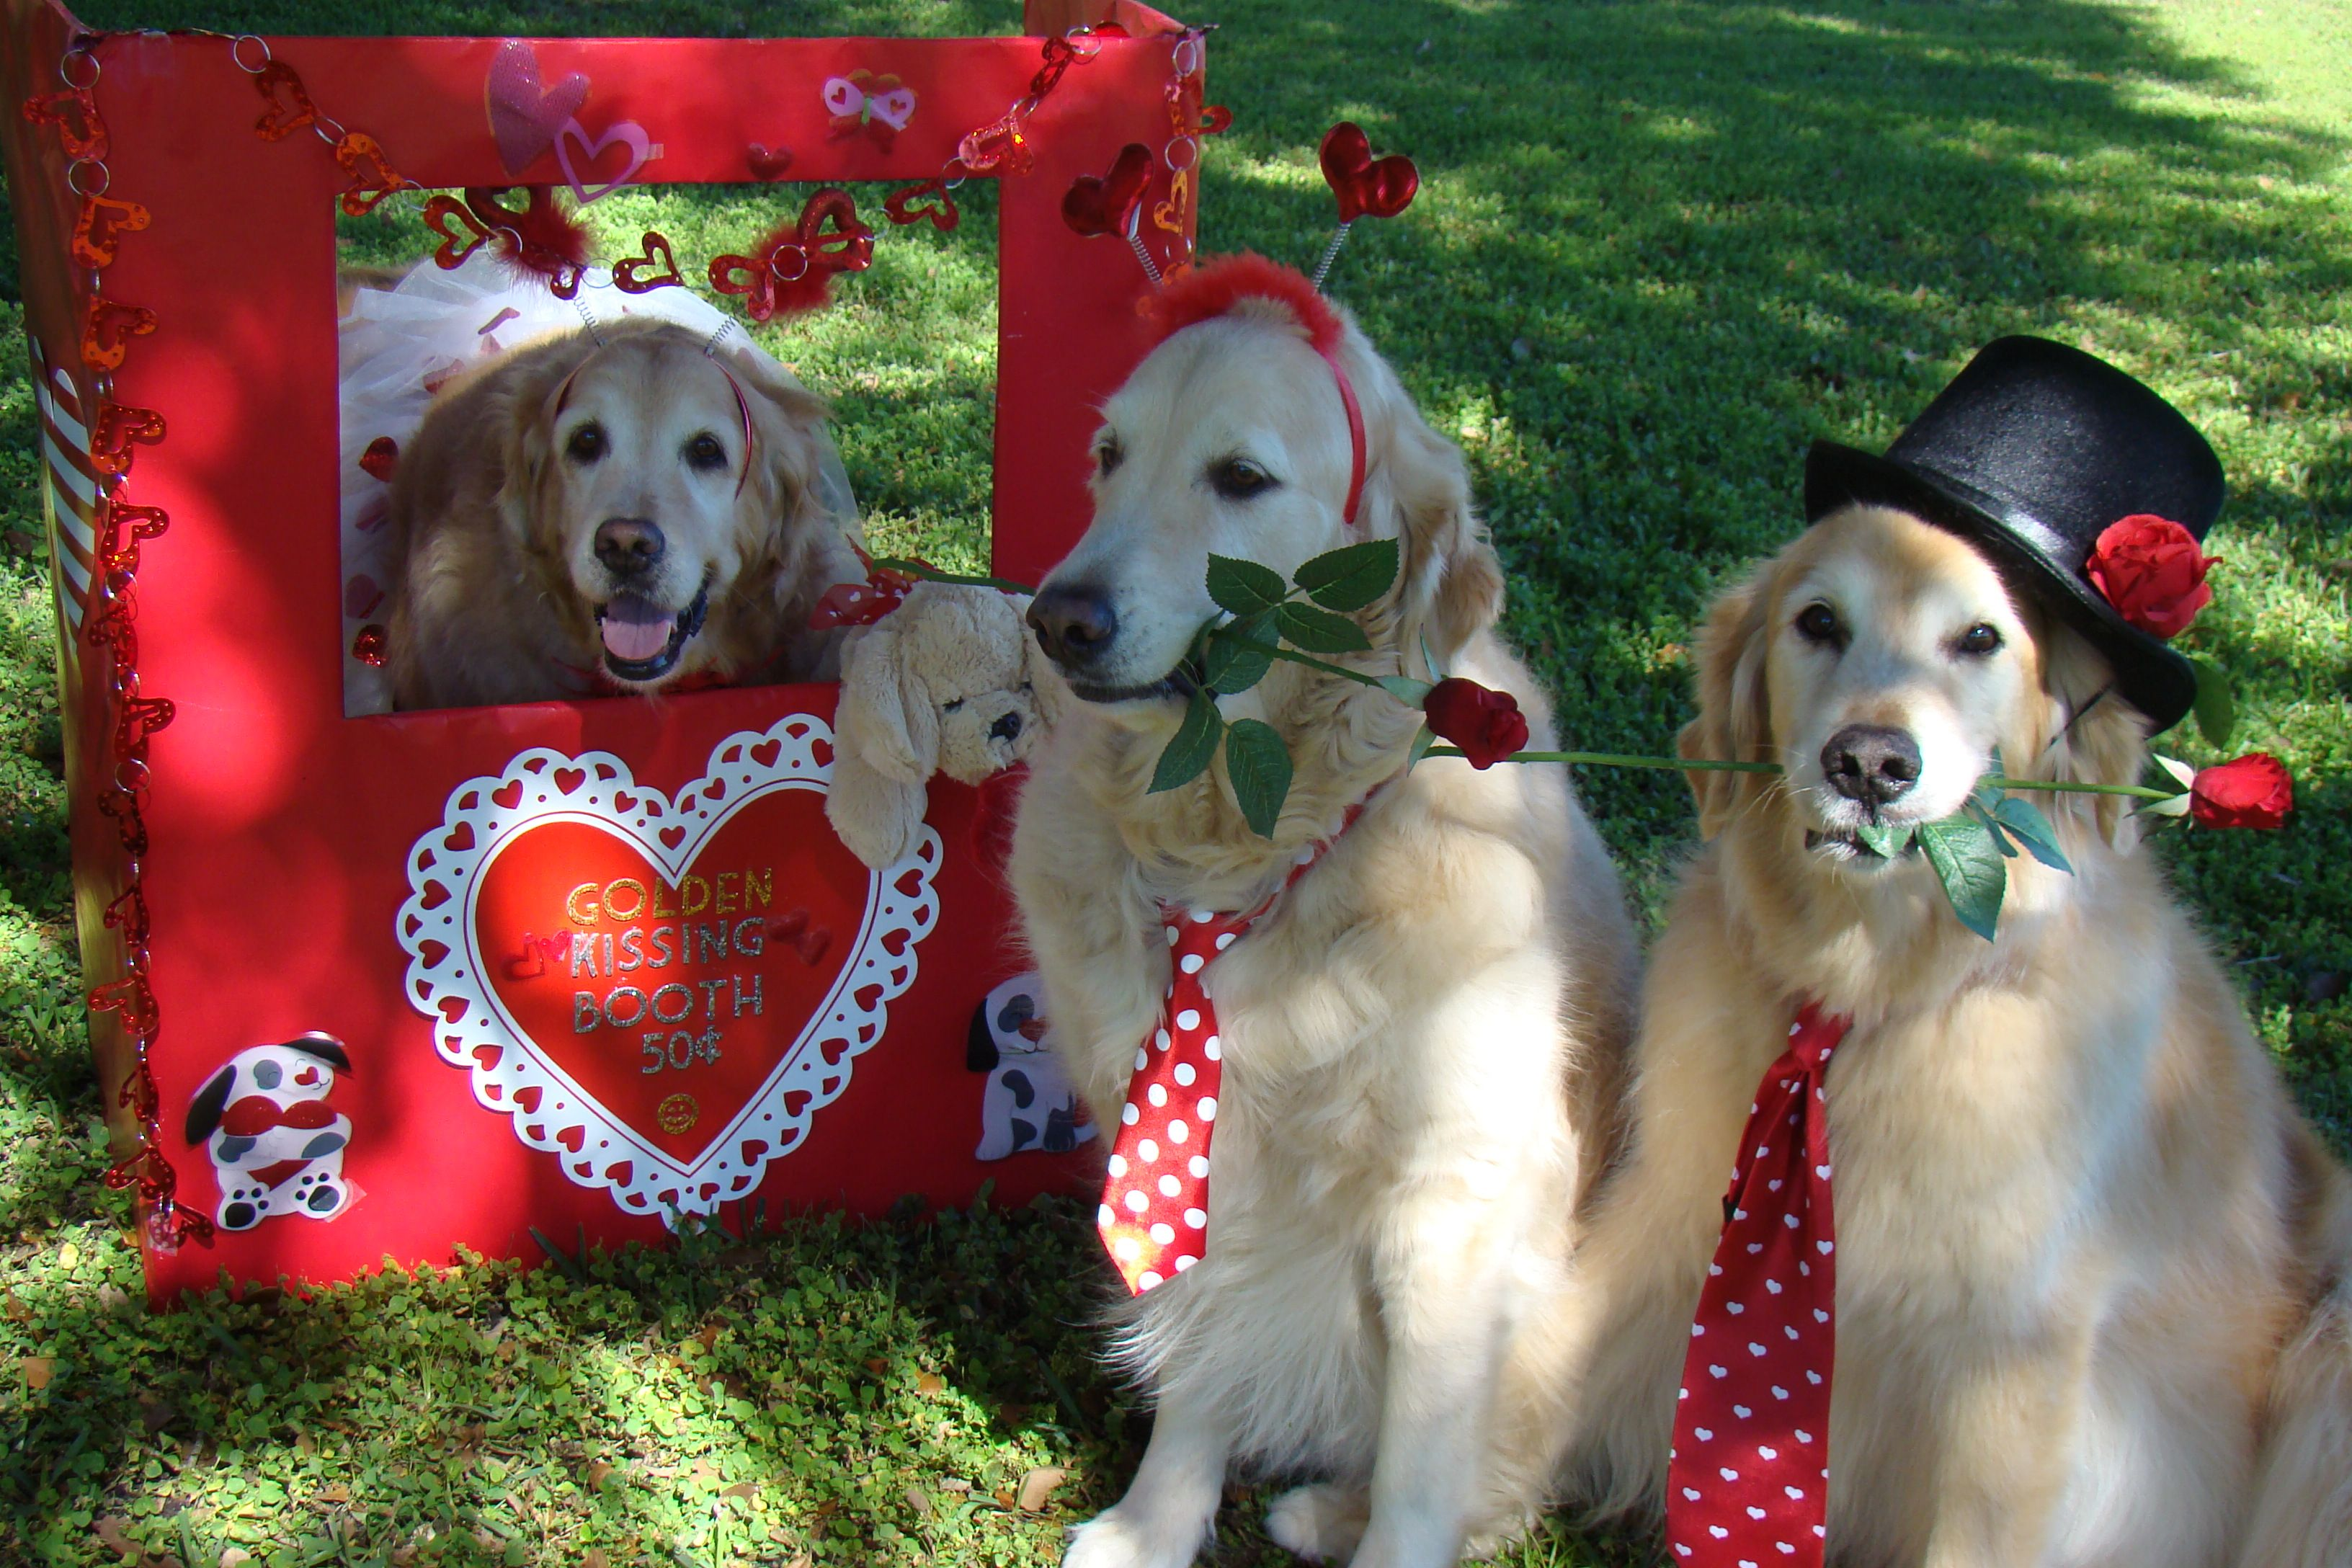 Brie In Her Golden Kissing Booth With Tyler And Bentley In Line 3